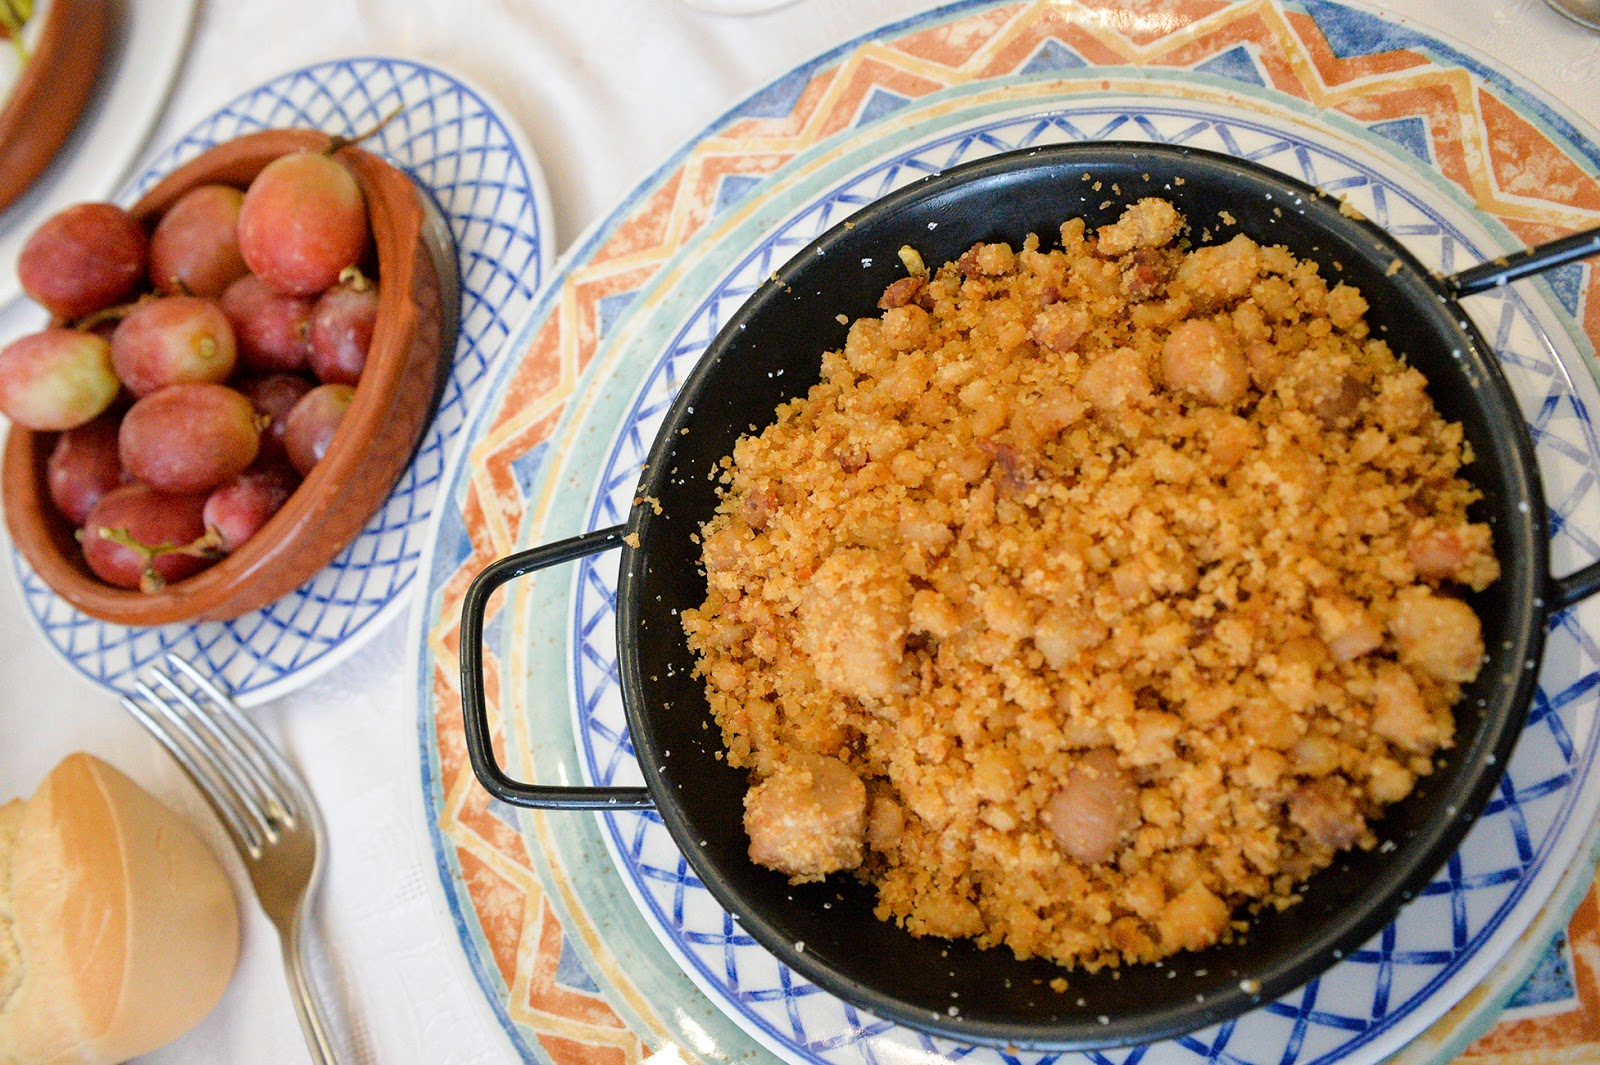 typical food comida tipica restaurante la mancha alcazar de san juan ciudad real spain migas uvas bread crumbs